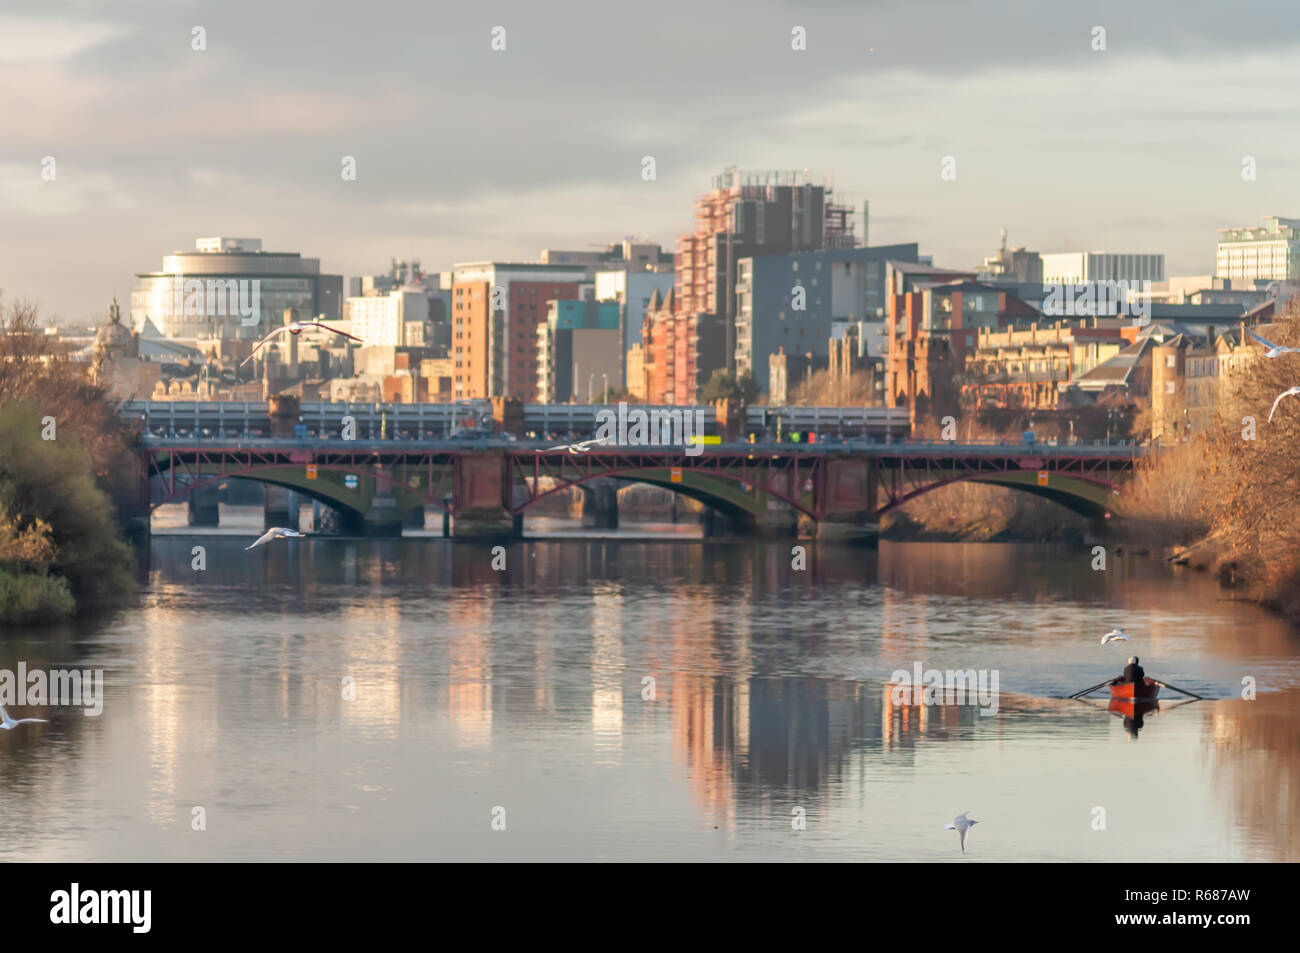 Glasgow, Scotland, UK. 4th December, 2018. UK Weather. George Parsonage together with a colleague from the Glasgow Humane Society rowing on a calm River Clyde on a cold, sunny afternoon. Credit: Skully/Alamy Live News - Stock Image